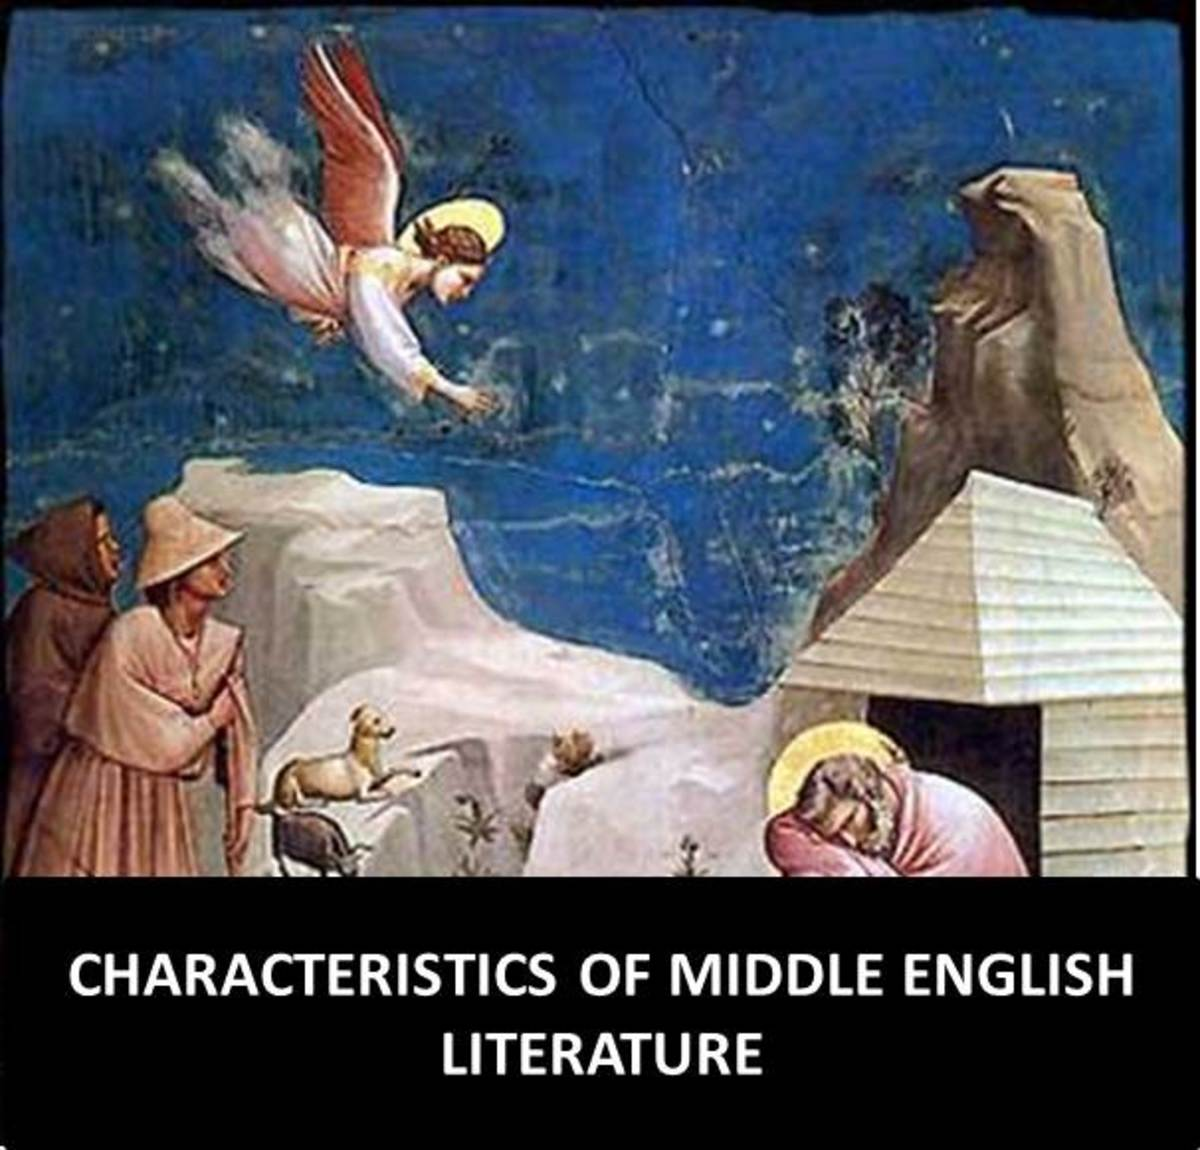 What are some typical features of old english poetry, please?